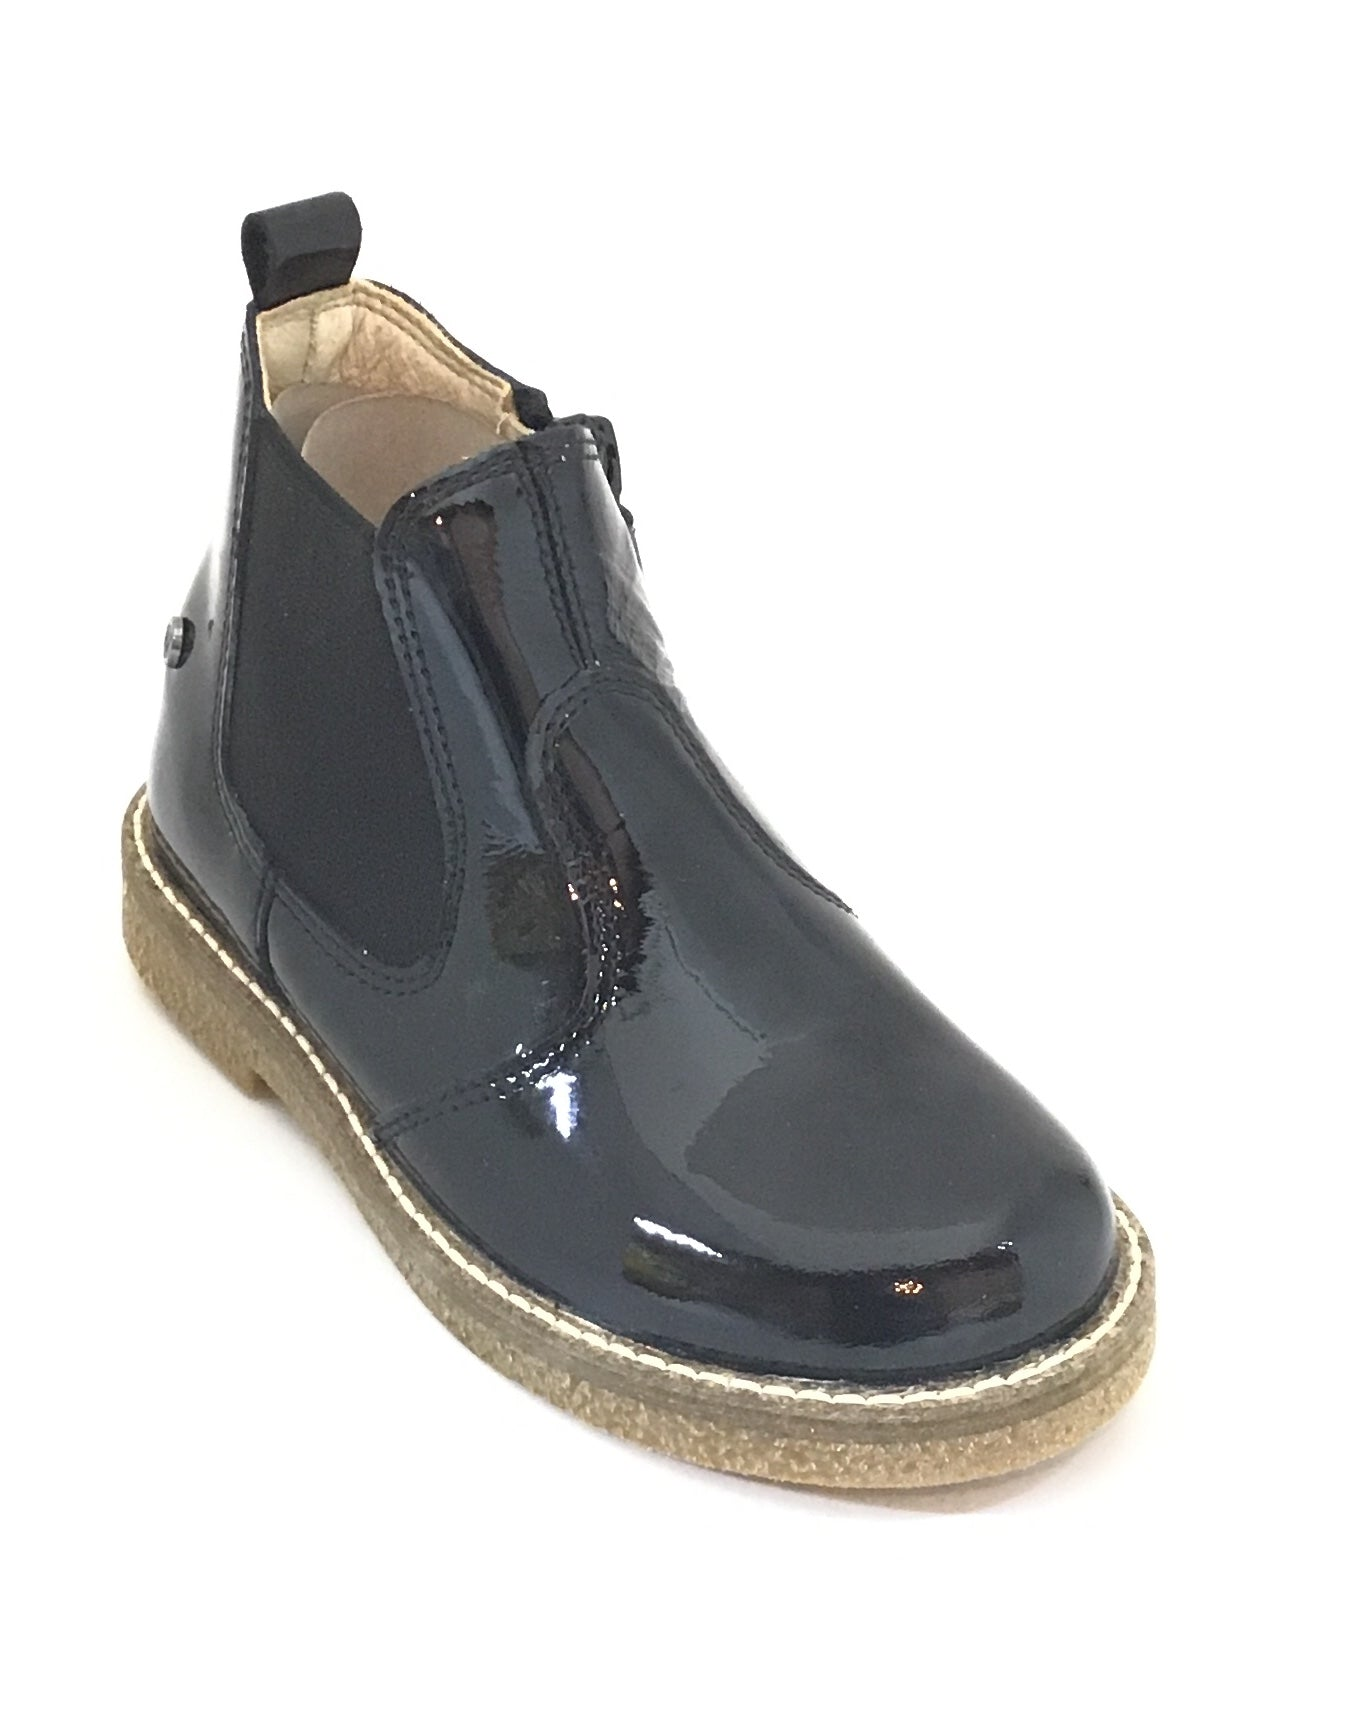 Naturino Black Patent Boot with Beige Sole